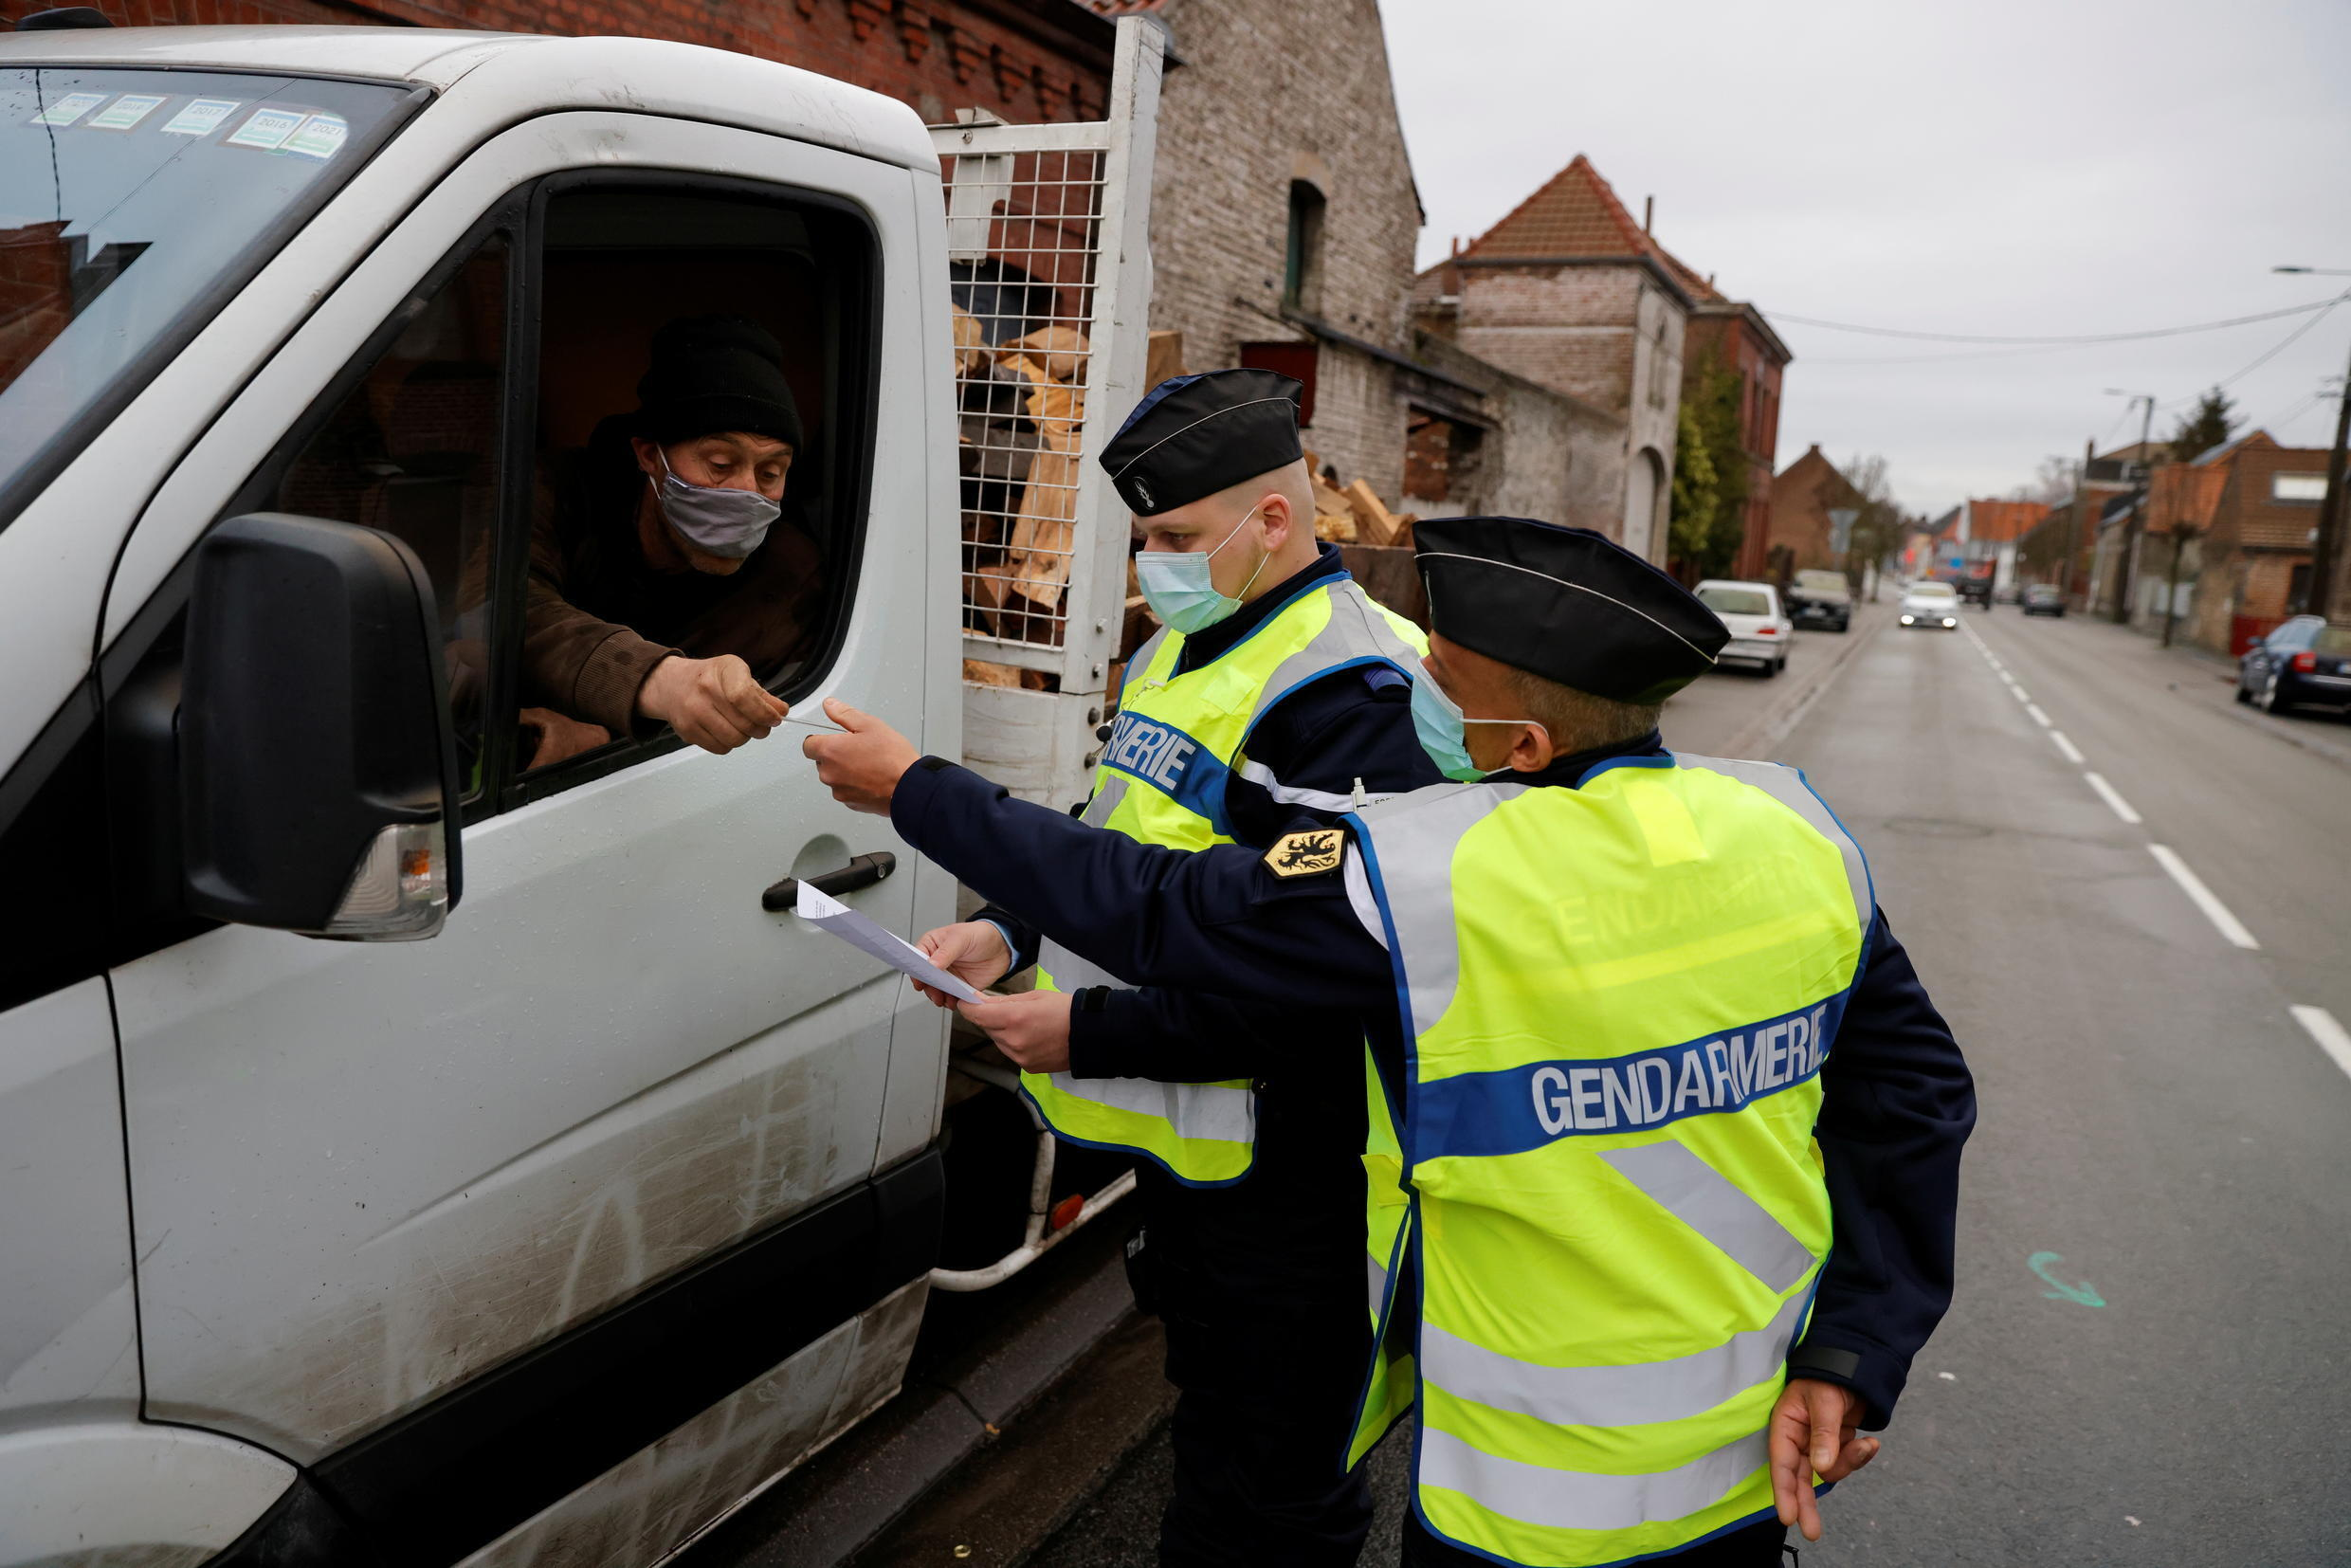 FRONTIERE  2021-02-03T115646Z_1090082802_RC2ZKL97DH47_RTRMADP_3_HEALTH-CORONAVIRUS-FRANCE-BORDERS